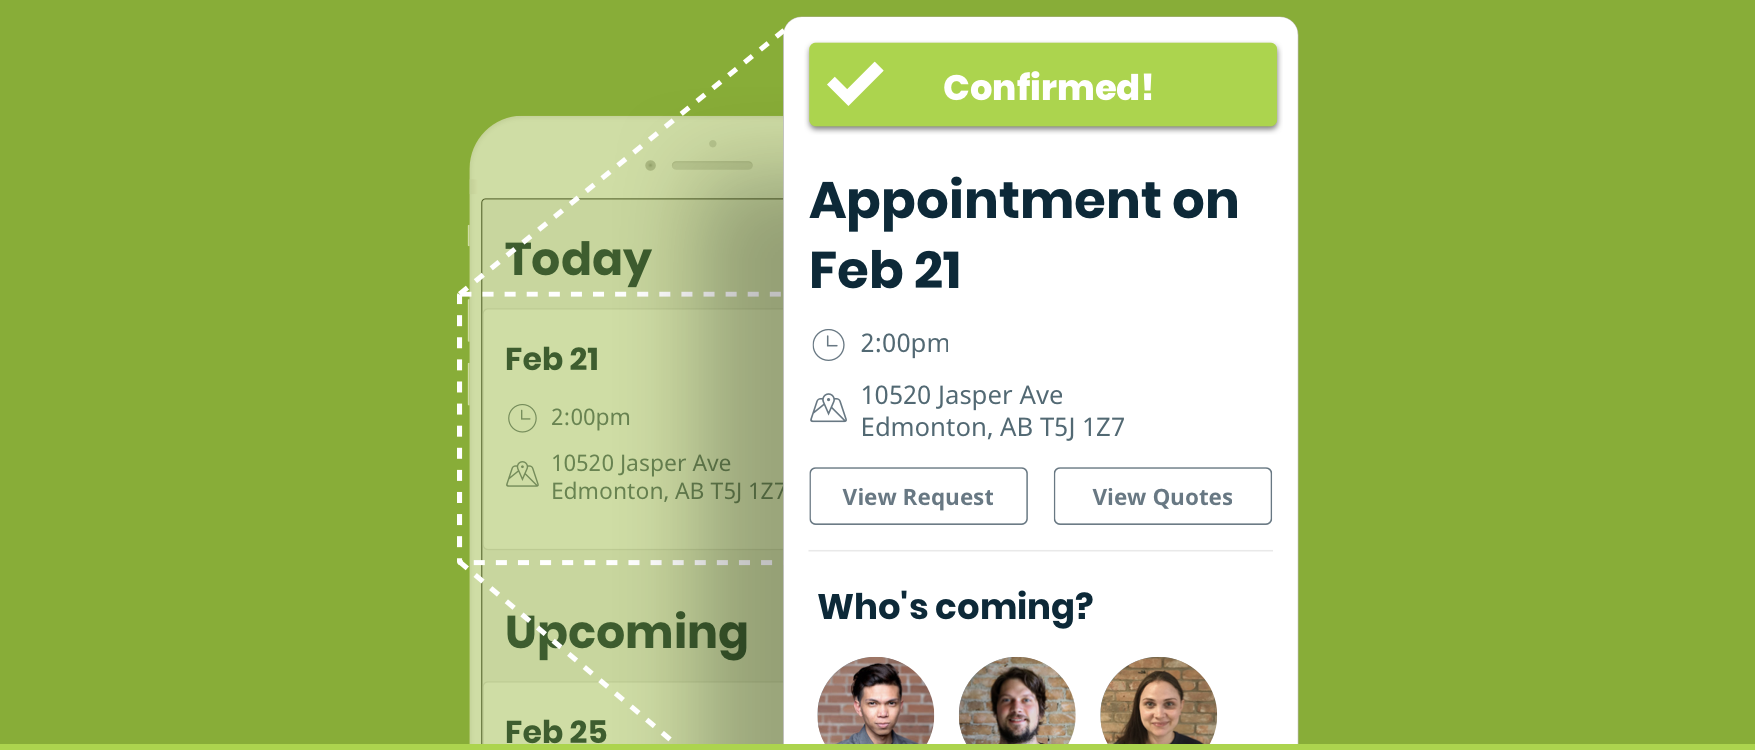 Appointment Confirmation Email